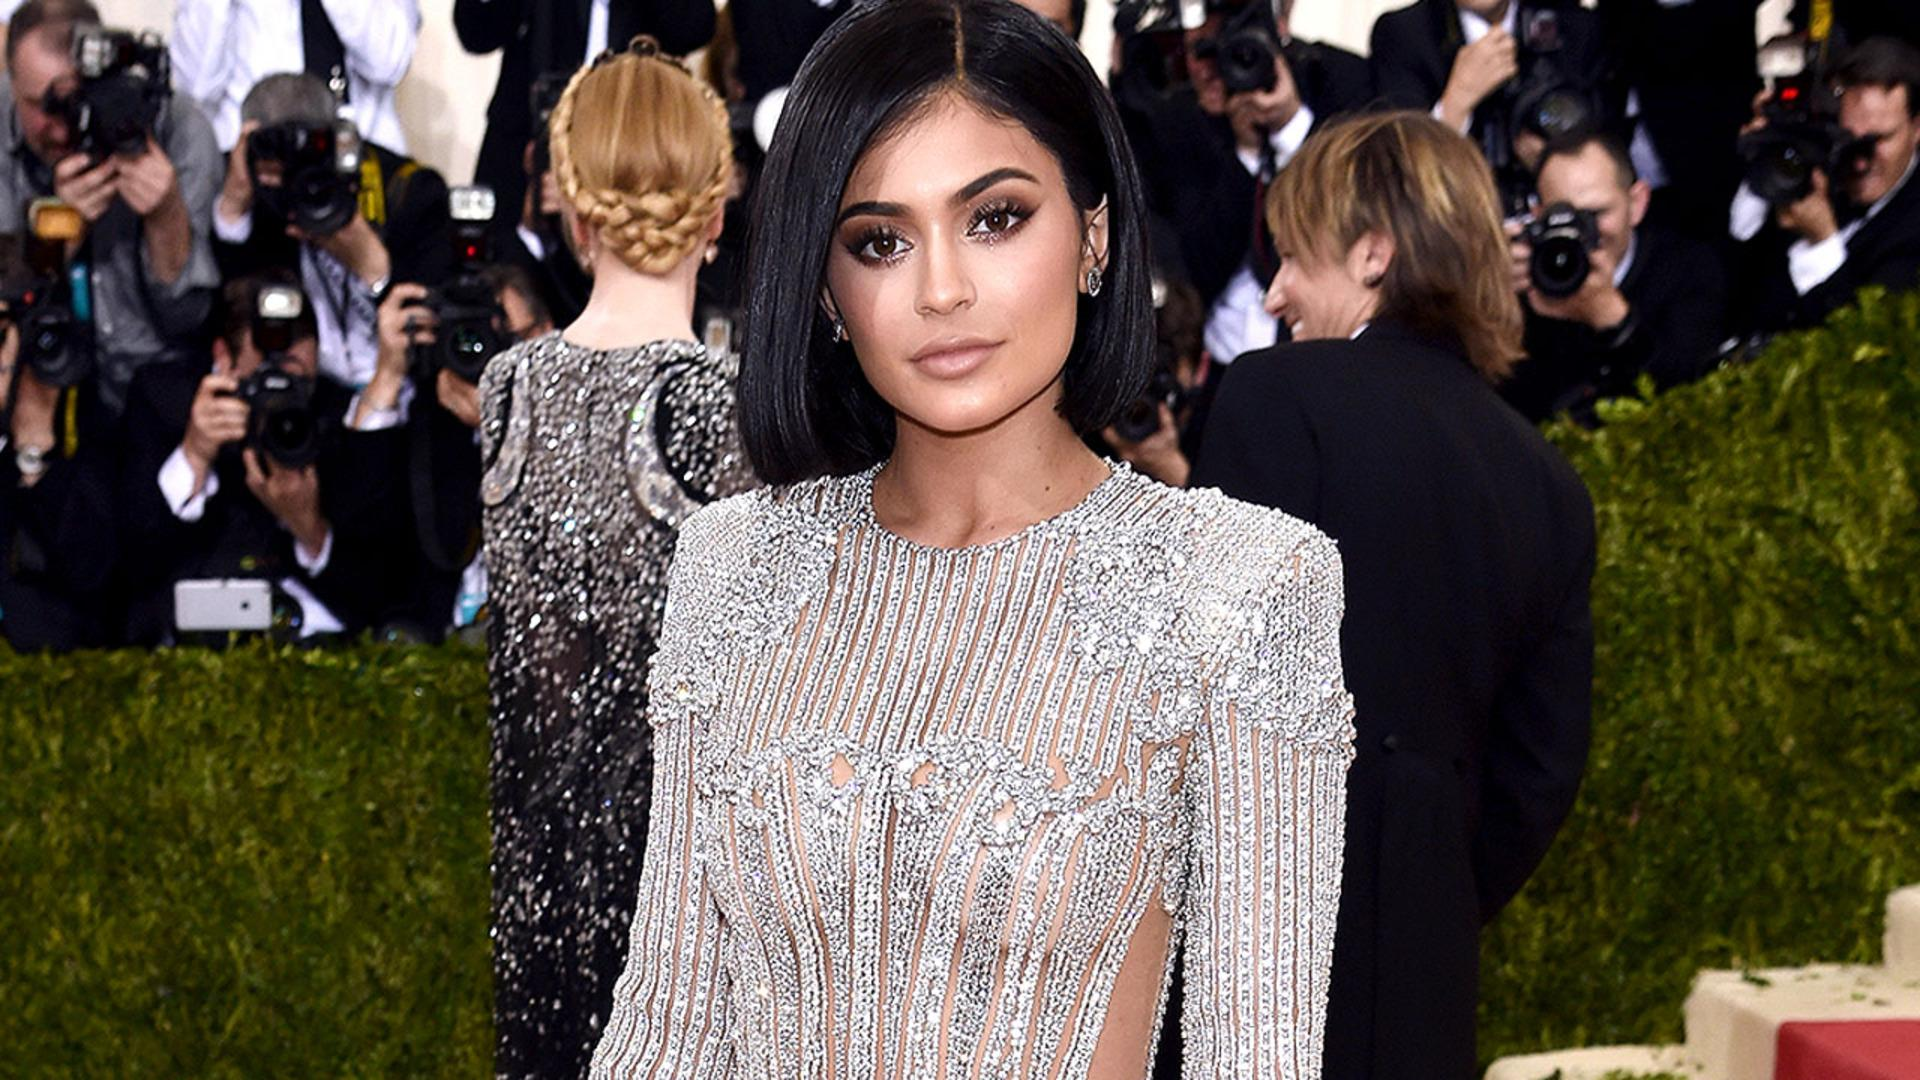 Kylie Jenner's Met Gala Gown Made Her Bleed!